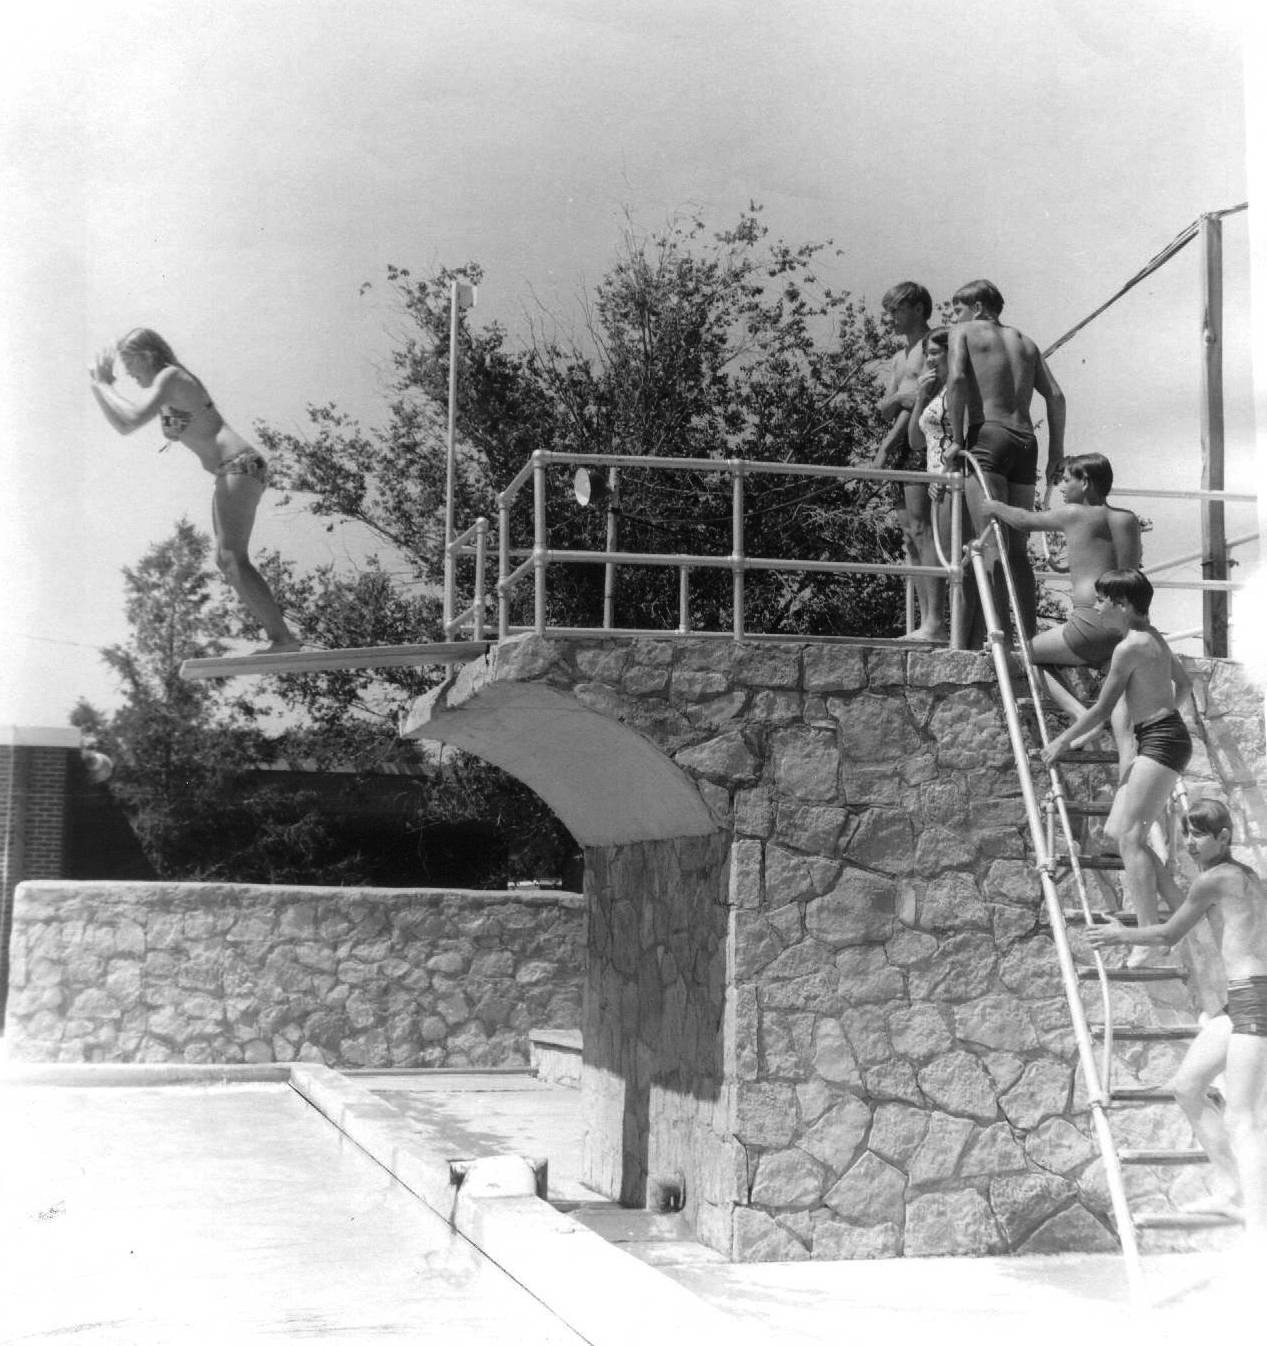 city swimming pool 1972 stone col no number